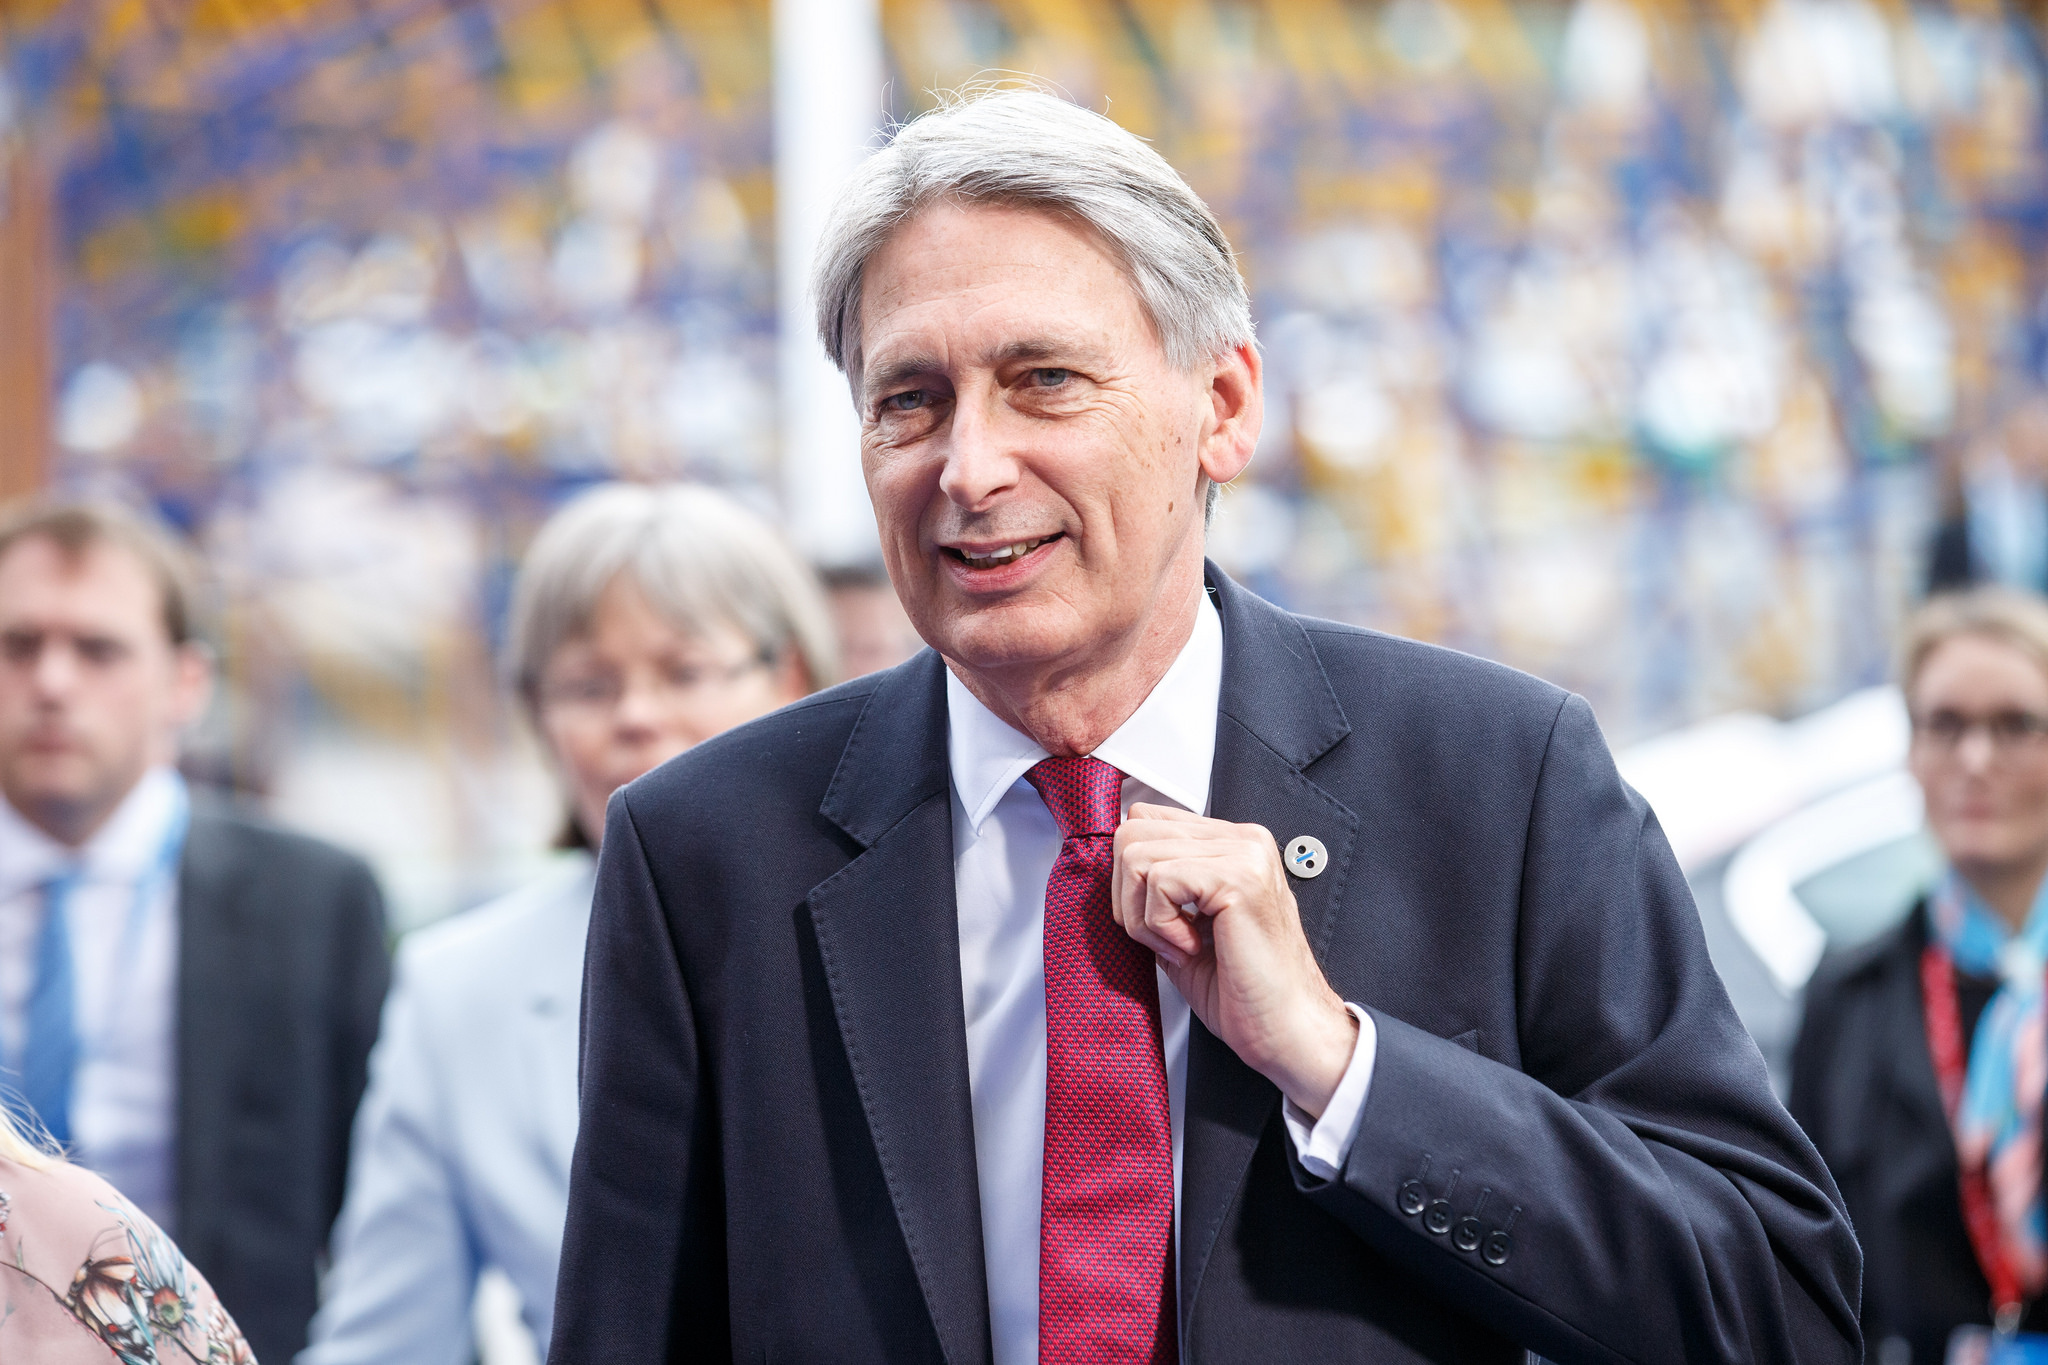 Chancellor to launch consultation on single-use plastics tax